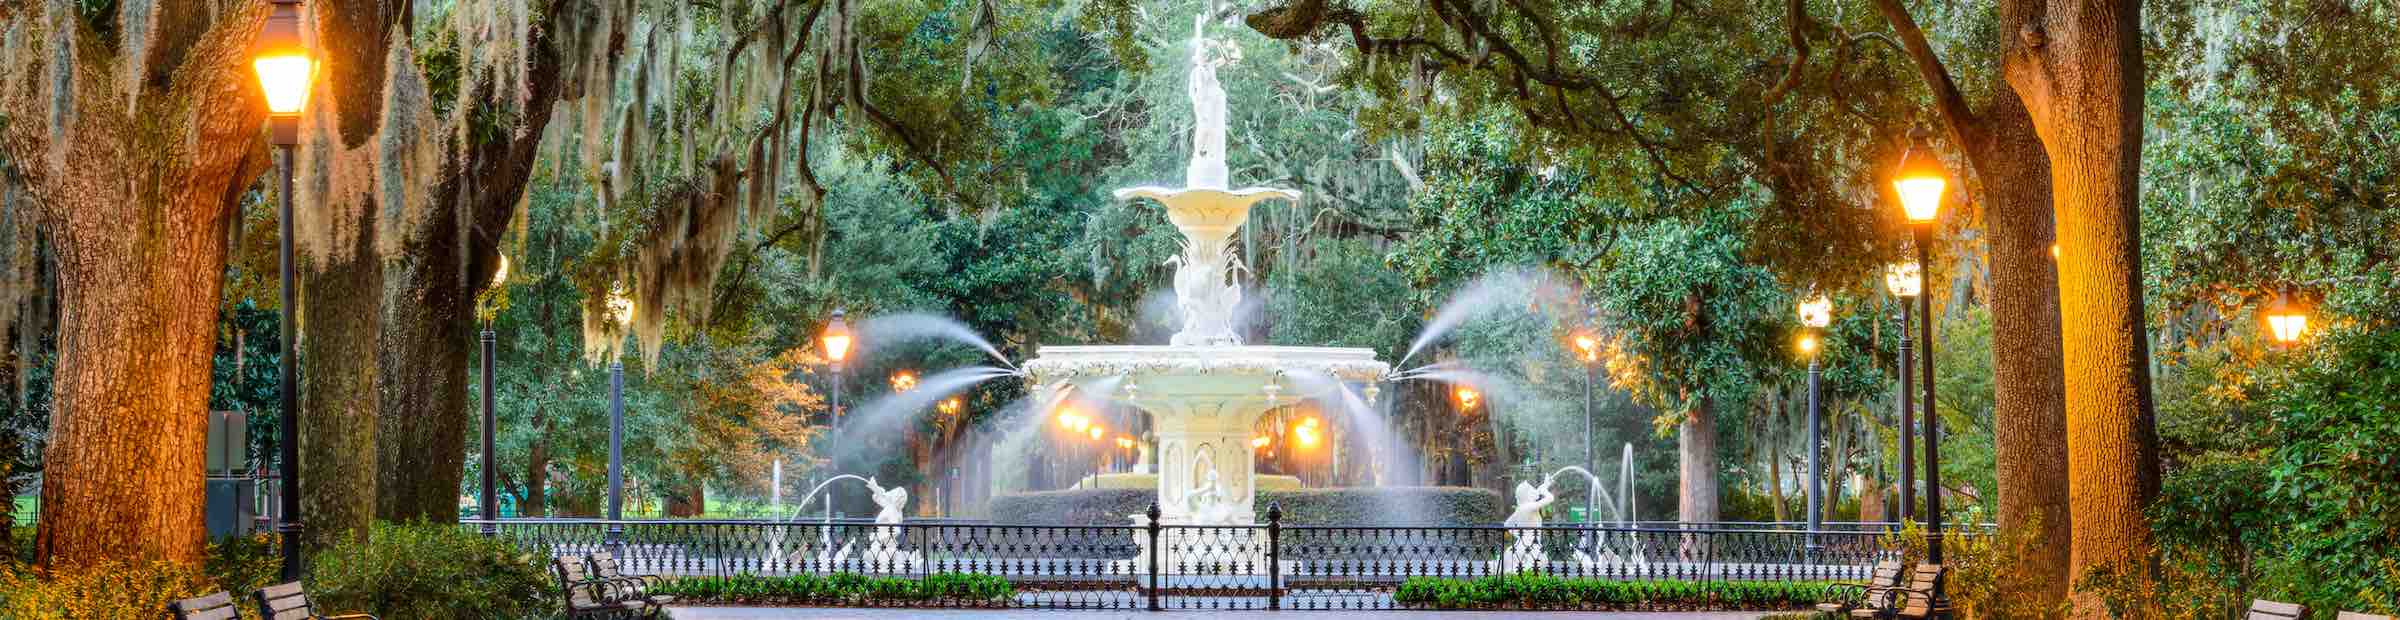 An evening view of the fountain in Forsyth Park.